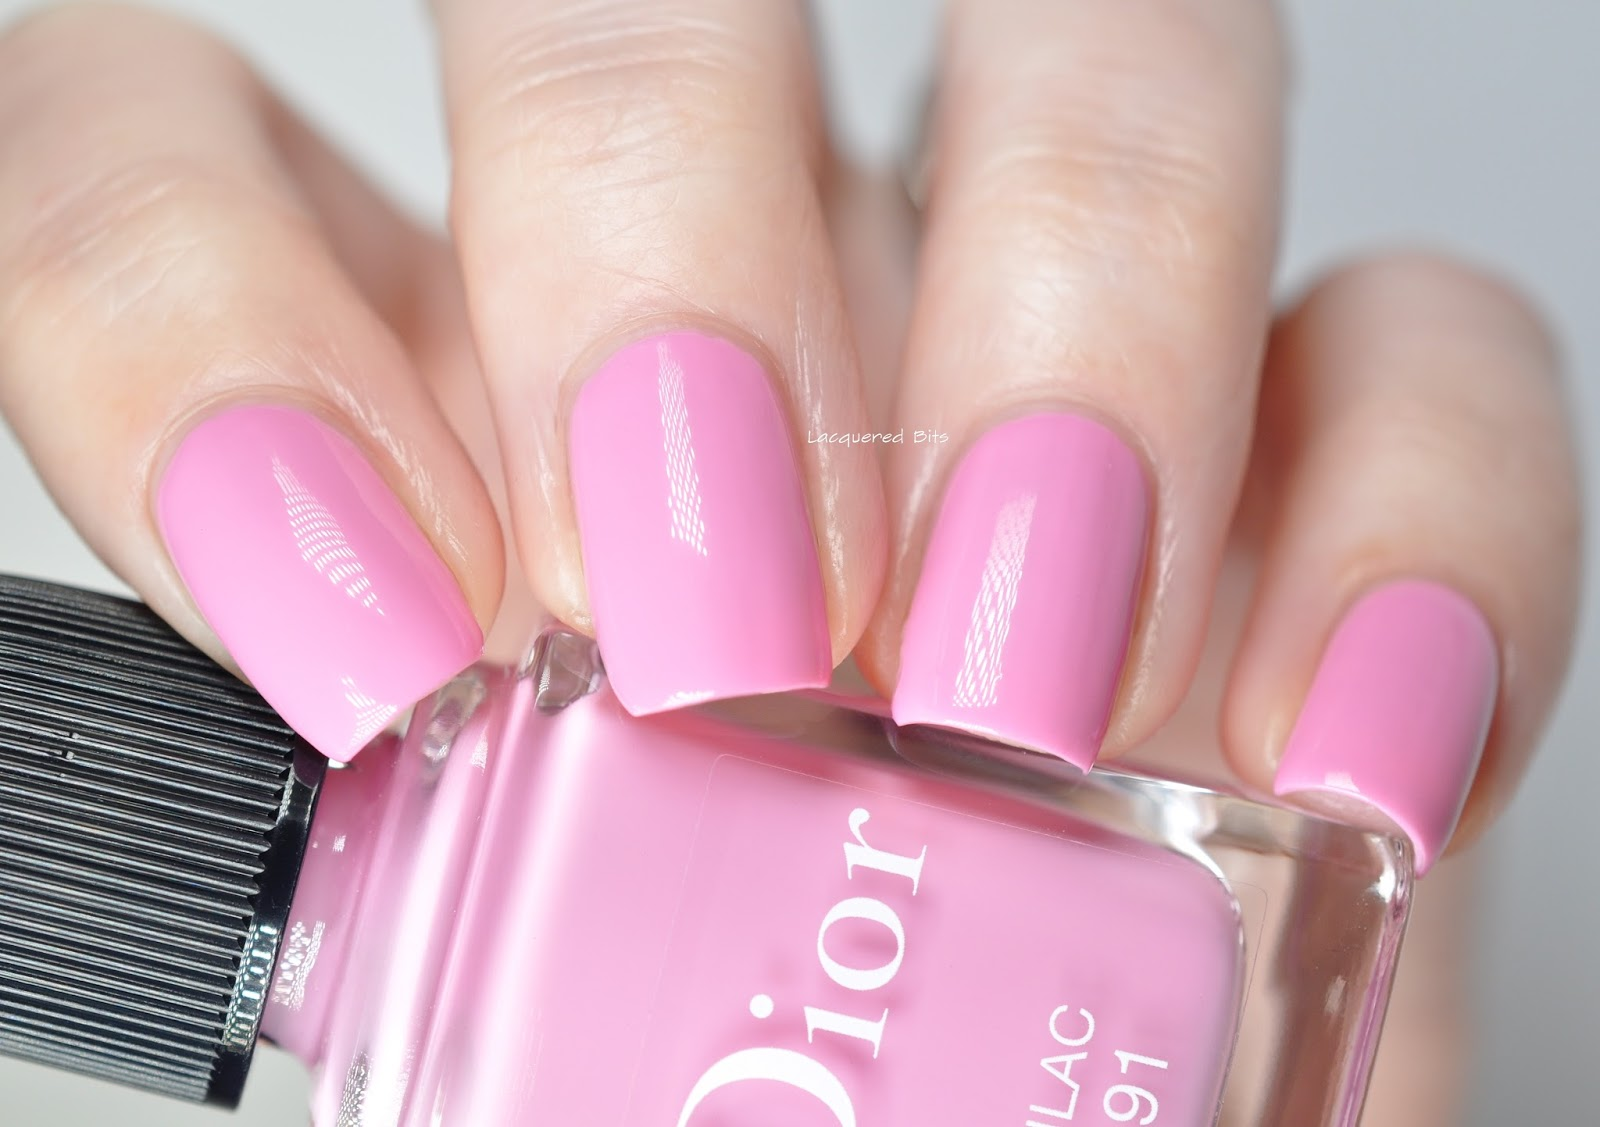 Lilac - Dior Spring 2016 Glowing Gardens